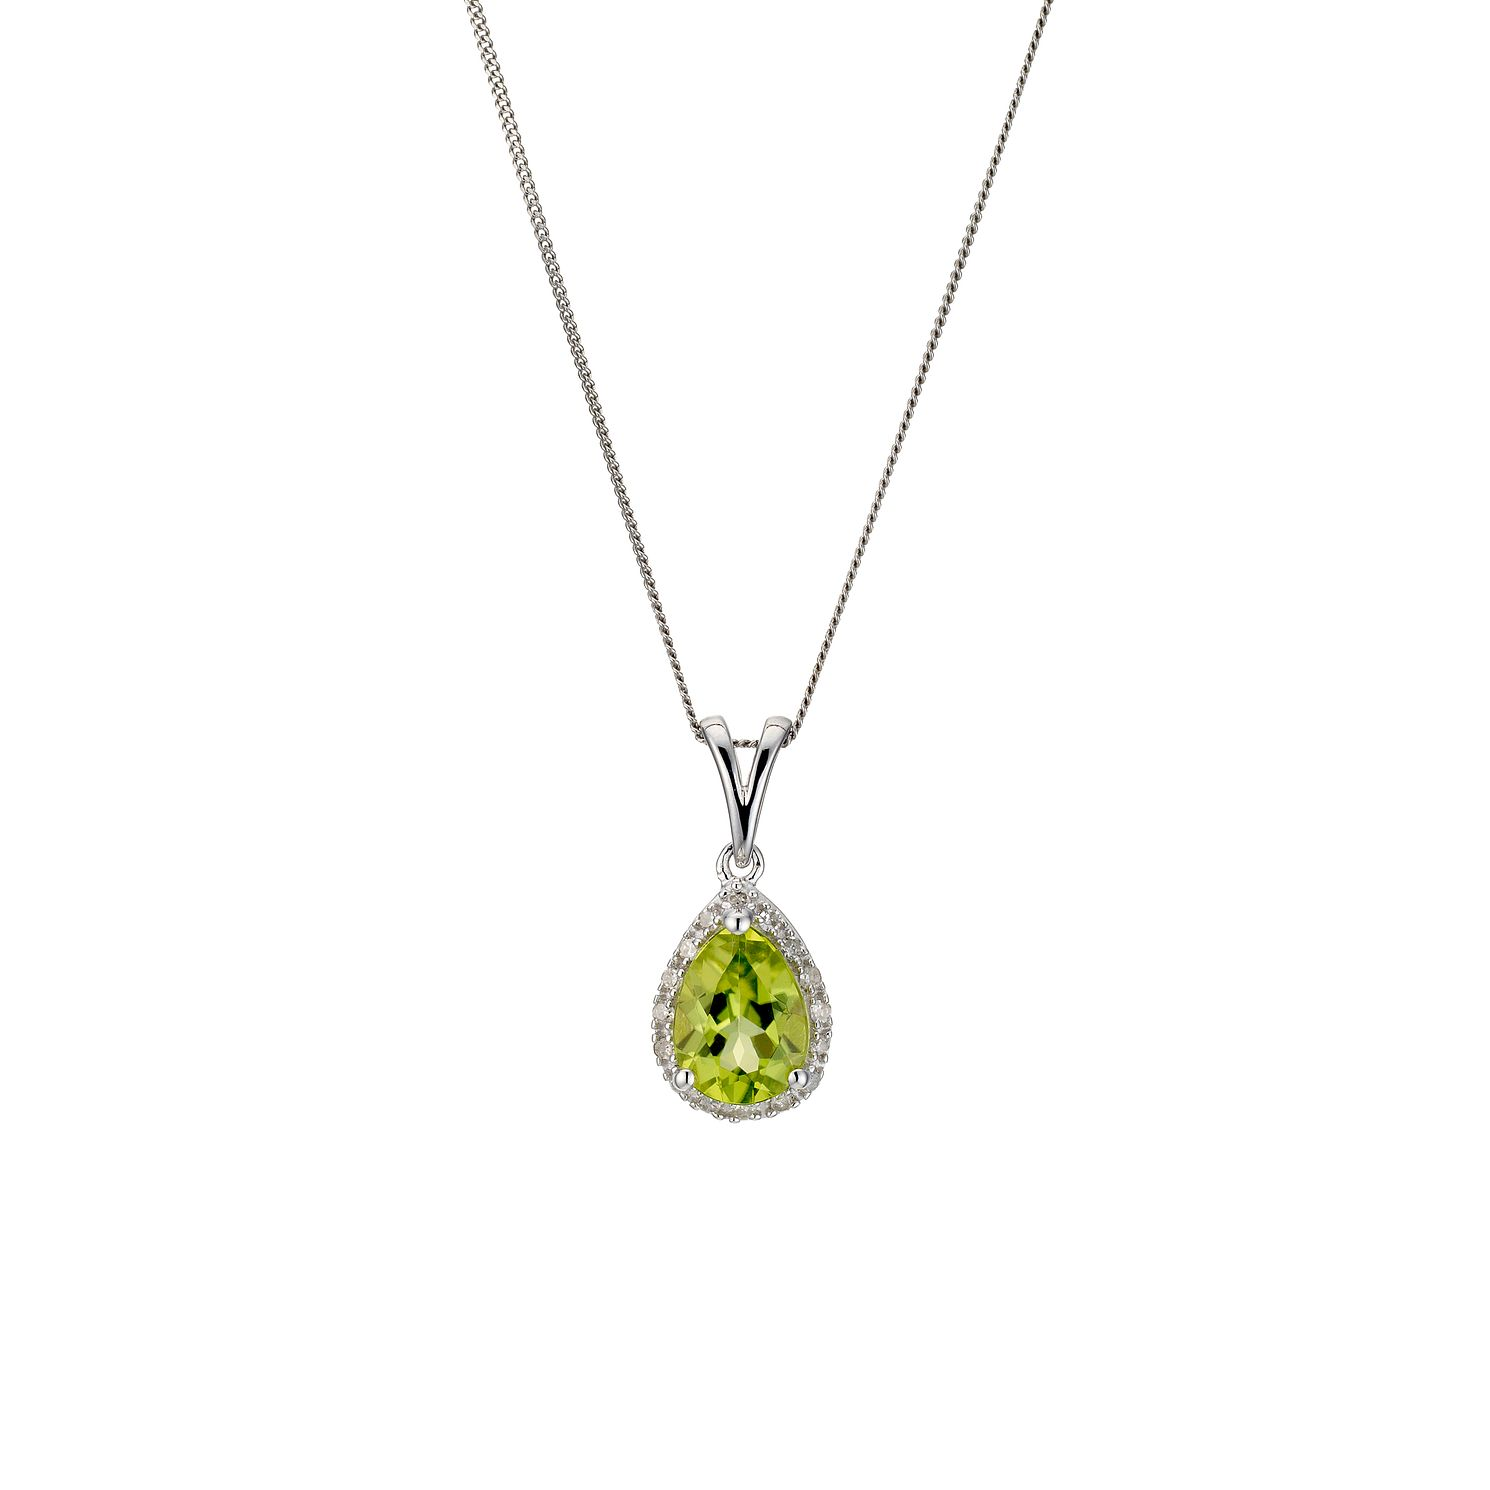 9ct White Gold, Peridot & Diamond Pendant - Product number 8929076